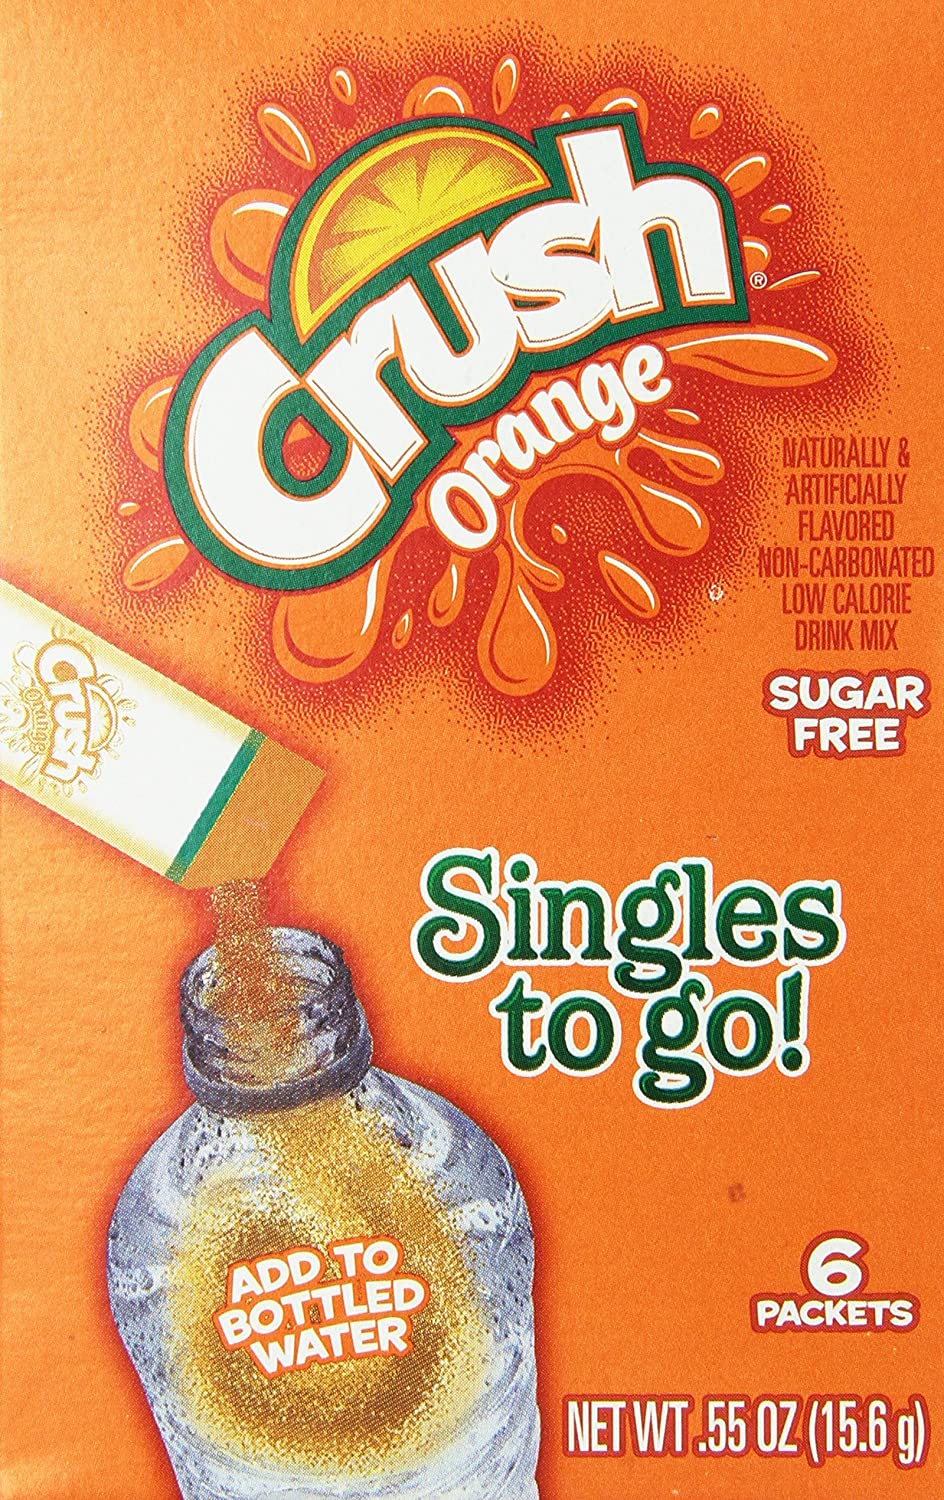 Pop fruit crush - Amazon Com Orange Crush Sugar Free Singles To Go 6 Packets New Just Add To Water Bottle Powdered Soft Drink Mixes Grocery Gourmet Food